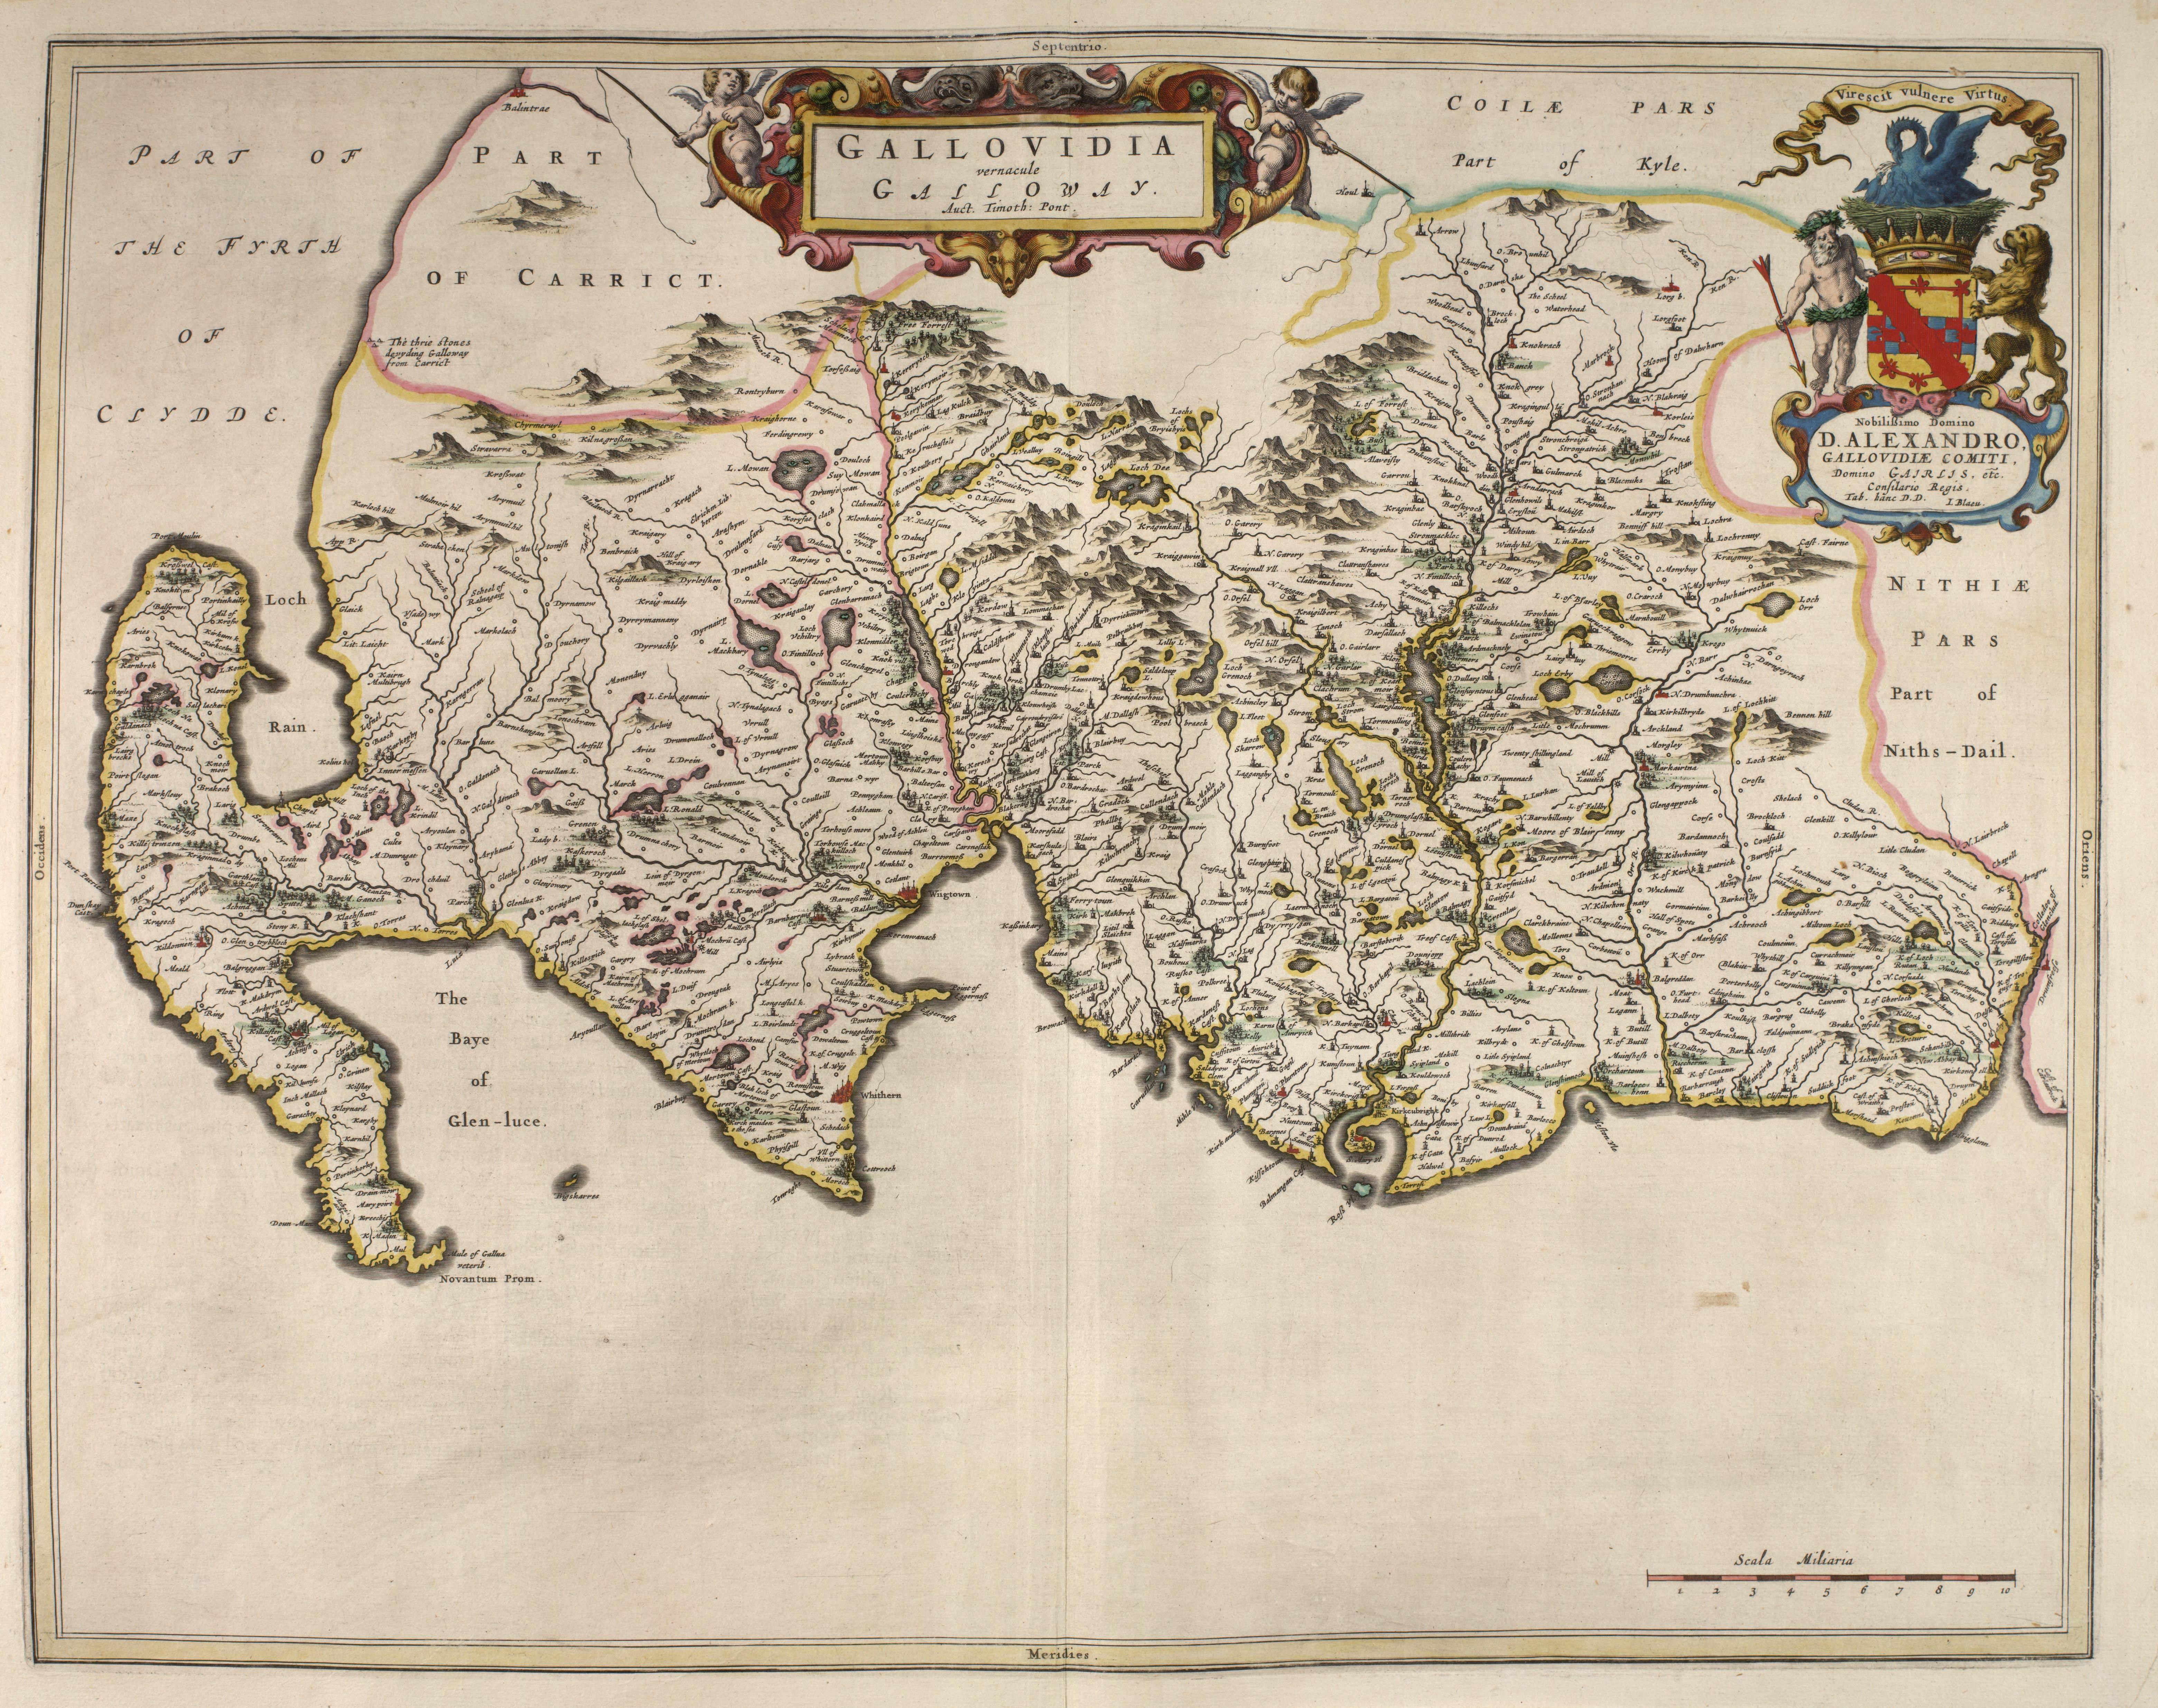 File:Blaeu - Atlas of Scotland 1654 - GALLOVIDIA - Galloway.jpg